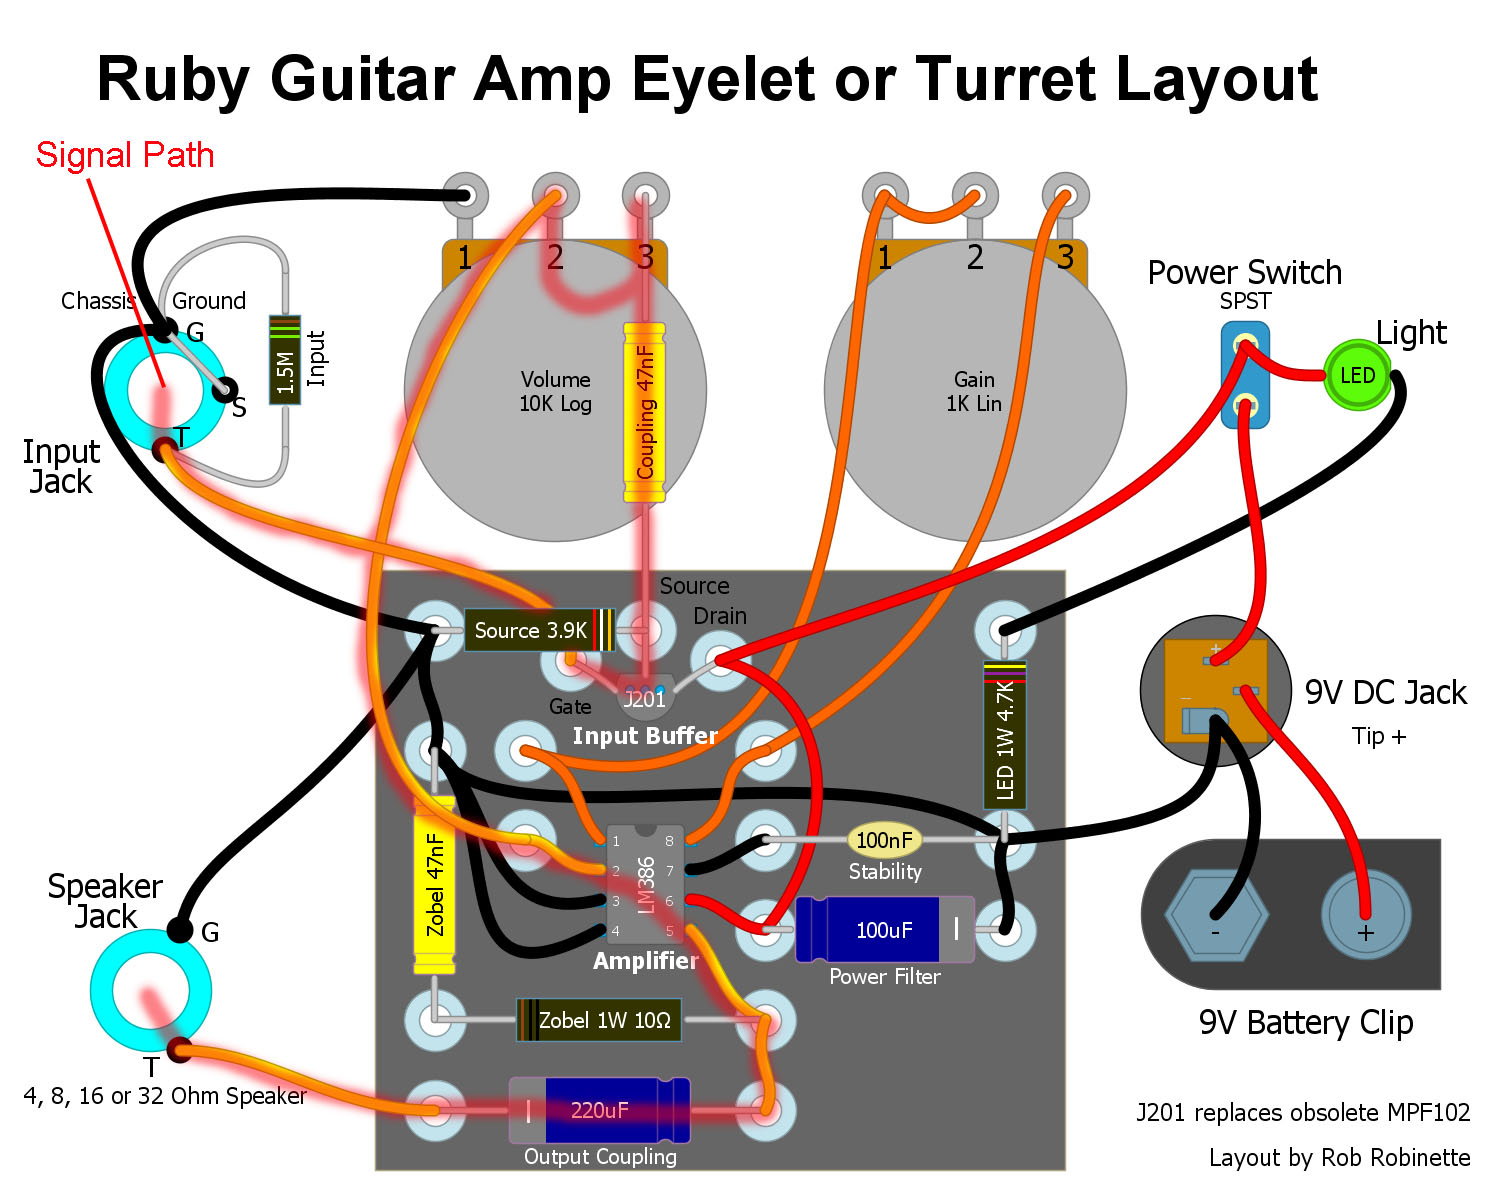 Ruby_Guitar_Amp_Eyelet_Layout_Signal_Path Hand Wired Tube Amp Wiring Diagram on